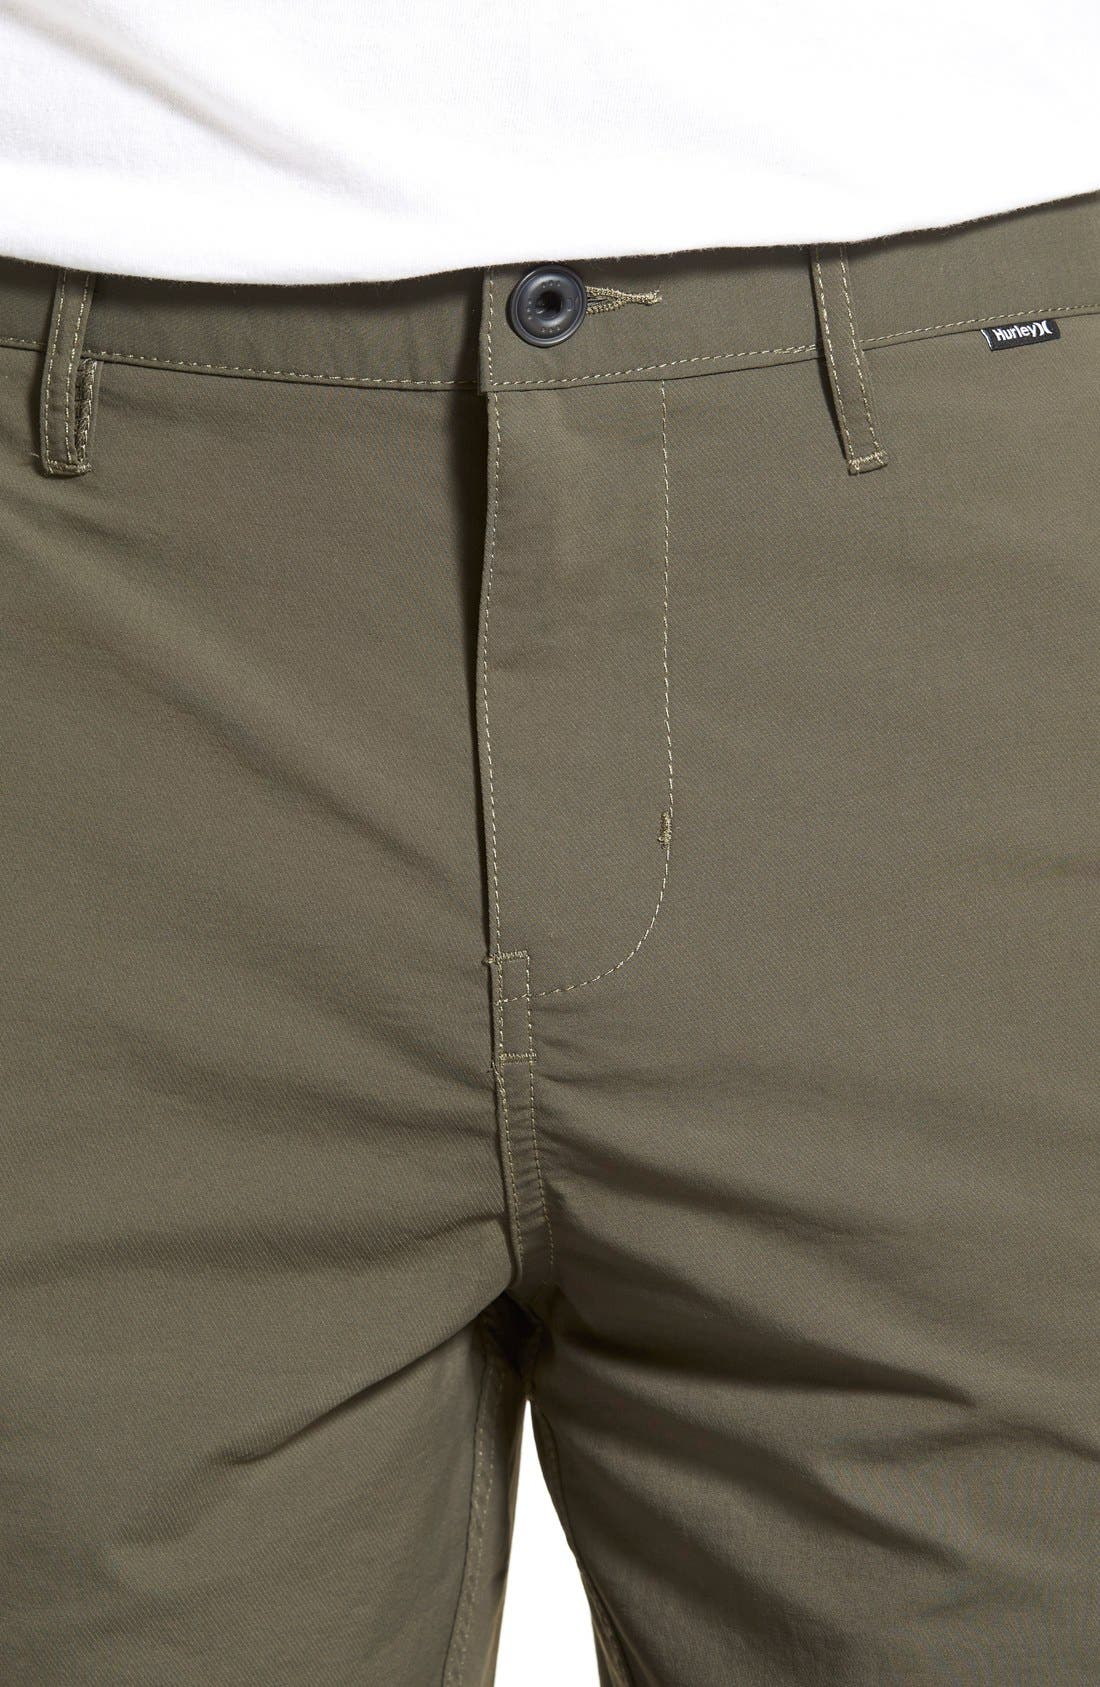 'Dry Out' Dri-FIT<sup>™</sup> Chino Shorts,                             Alternate thumbnail 181, color,